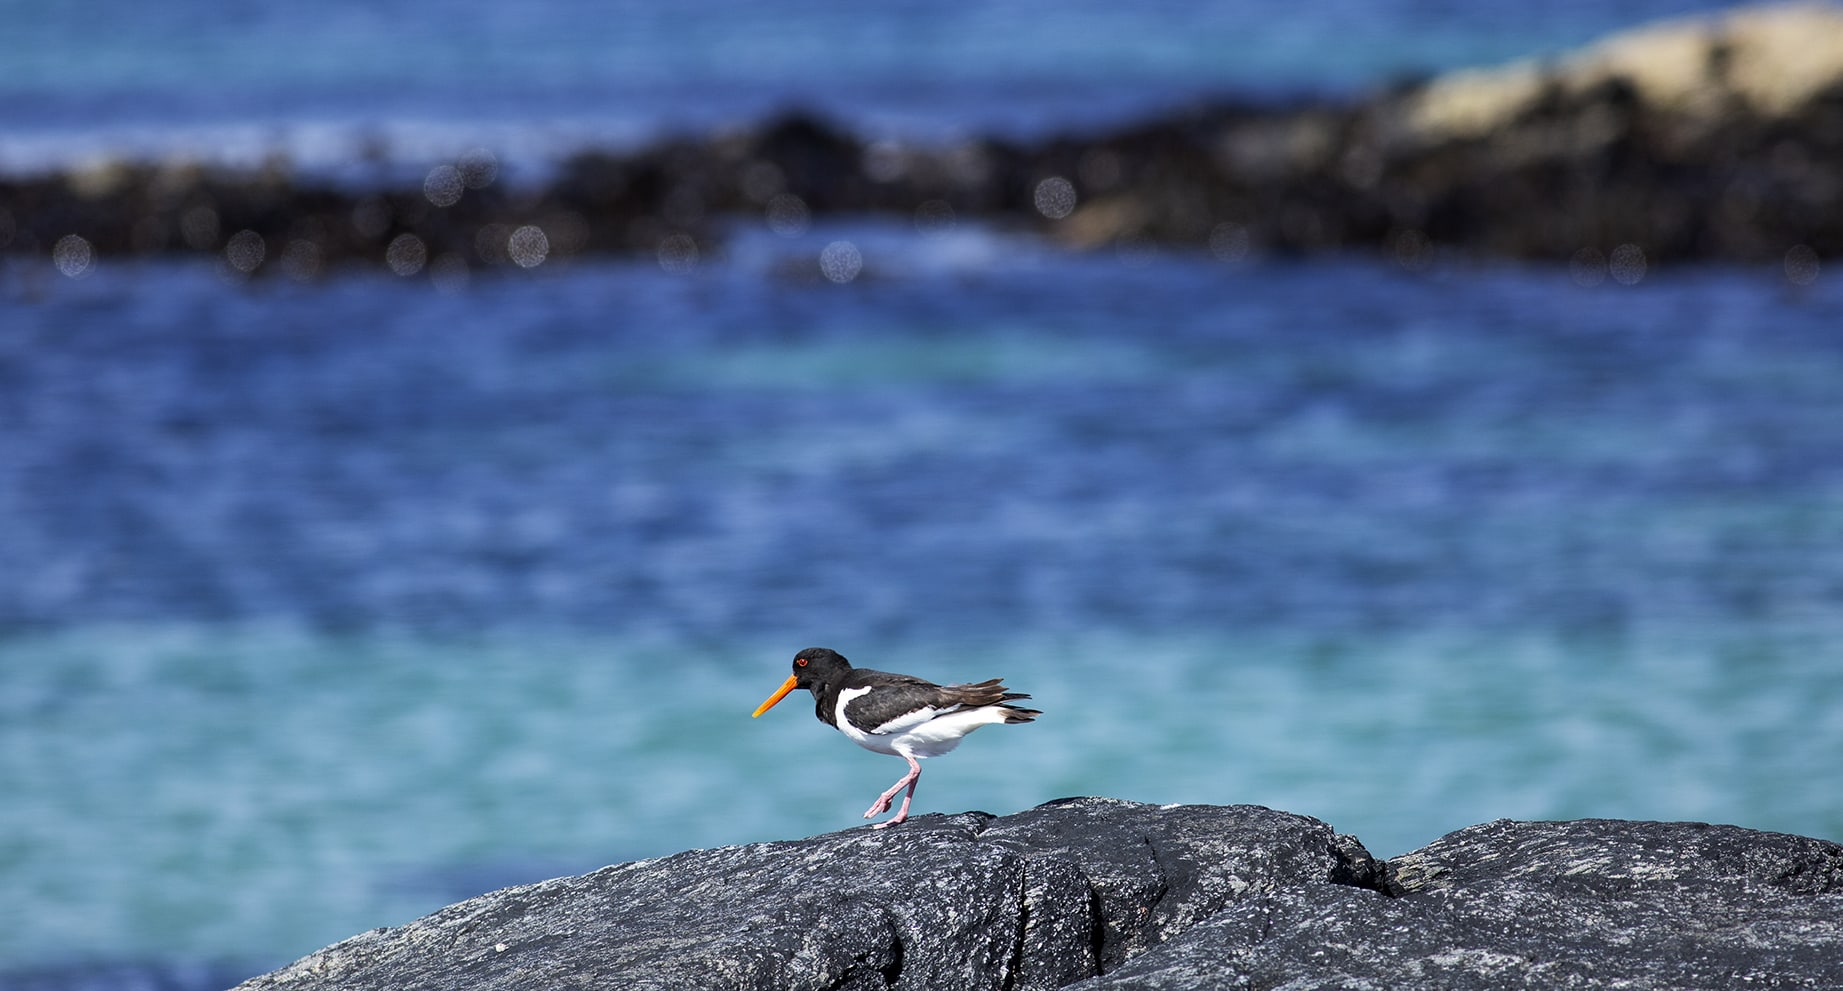 Oystercatcher, photographed by Jade Starmore